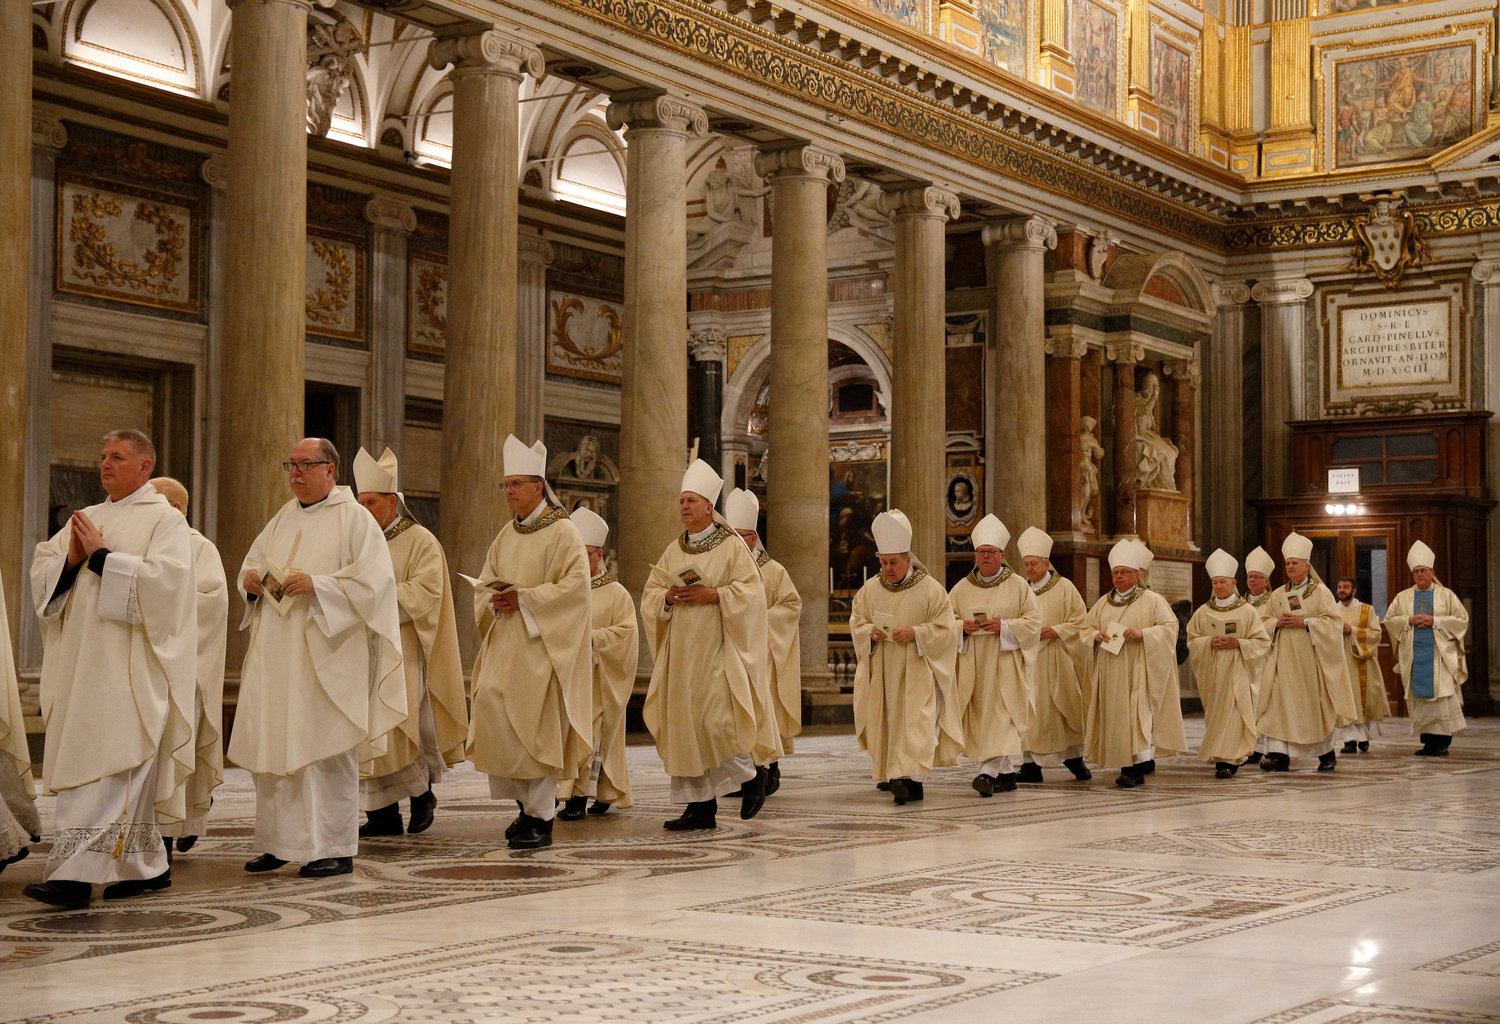 "U.S. bishops from Iowa, Kansas, Missouri and Nebraska arrive in procession to concelebrate Mass at the Basilica of St. Mary Major in Rome Jan. 14, 2020. The bishops were making their ""ad limina"" visits to the Vatican to report on the status of their dioceses to the pope and Vatican officials."